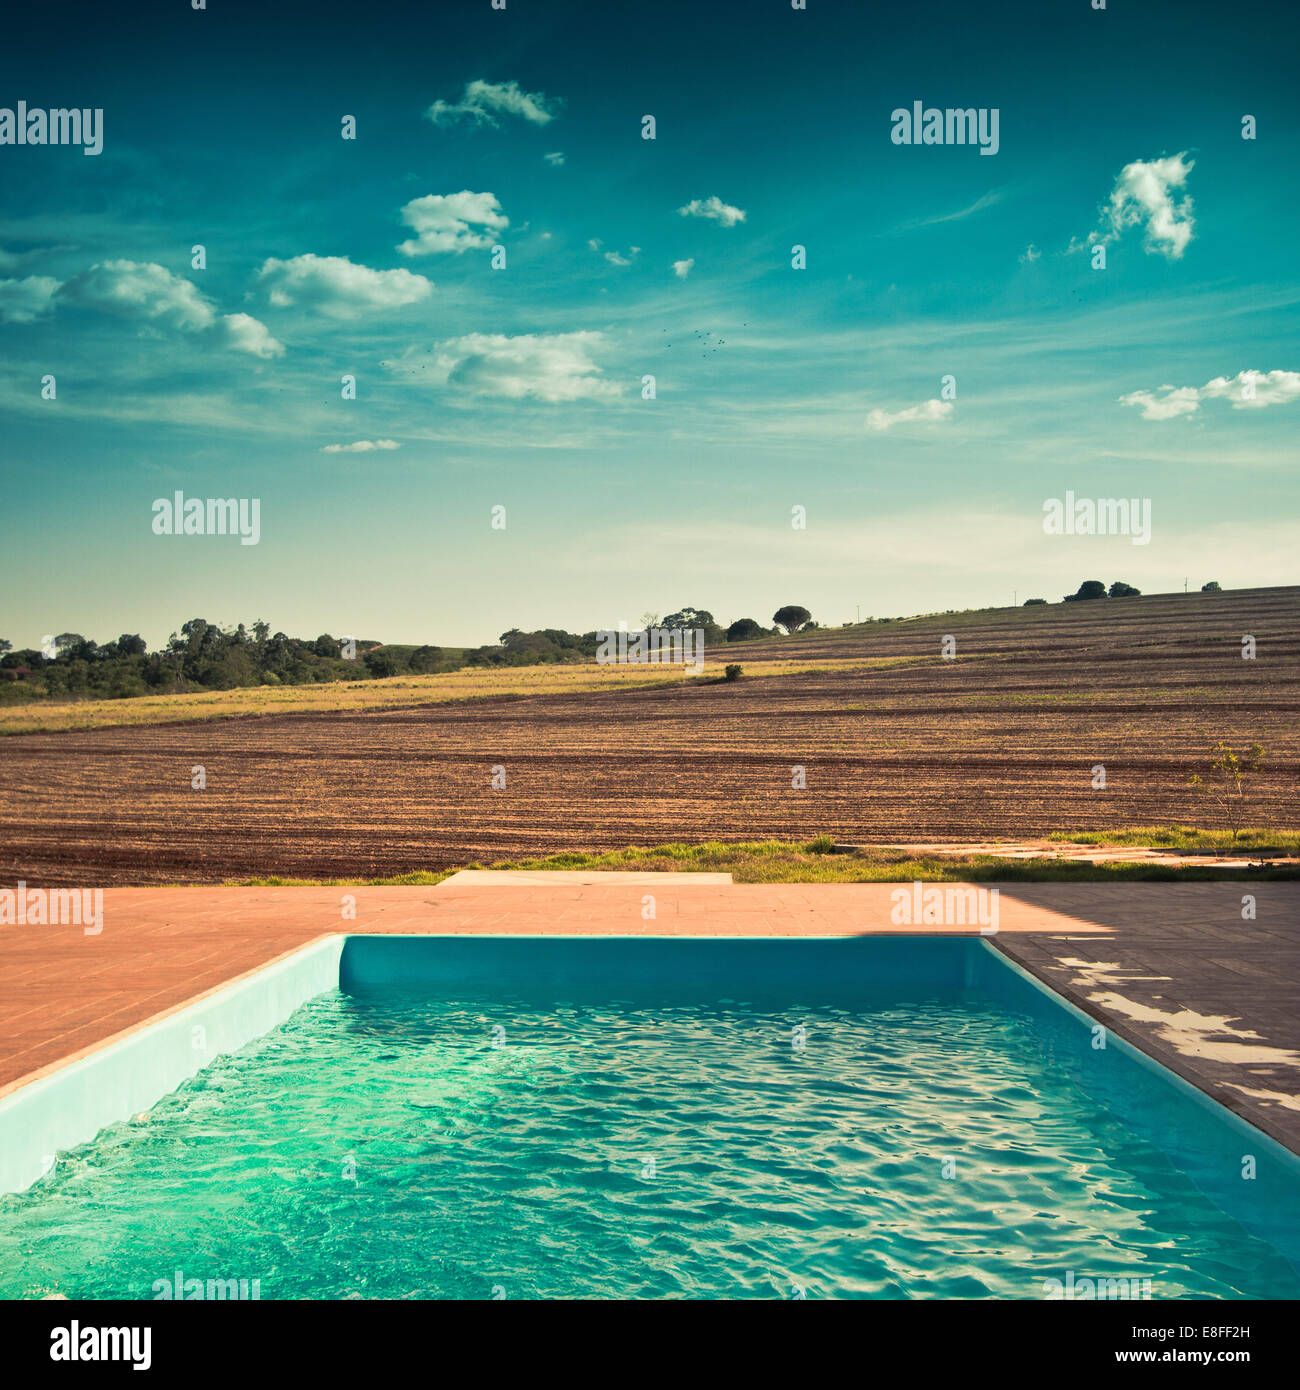 Outdoor pool and view over fields - Stock Image